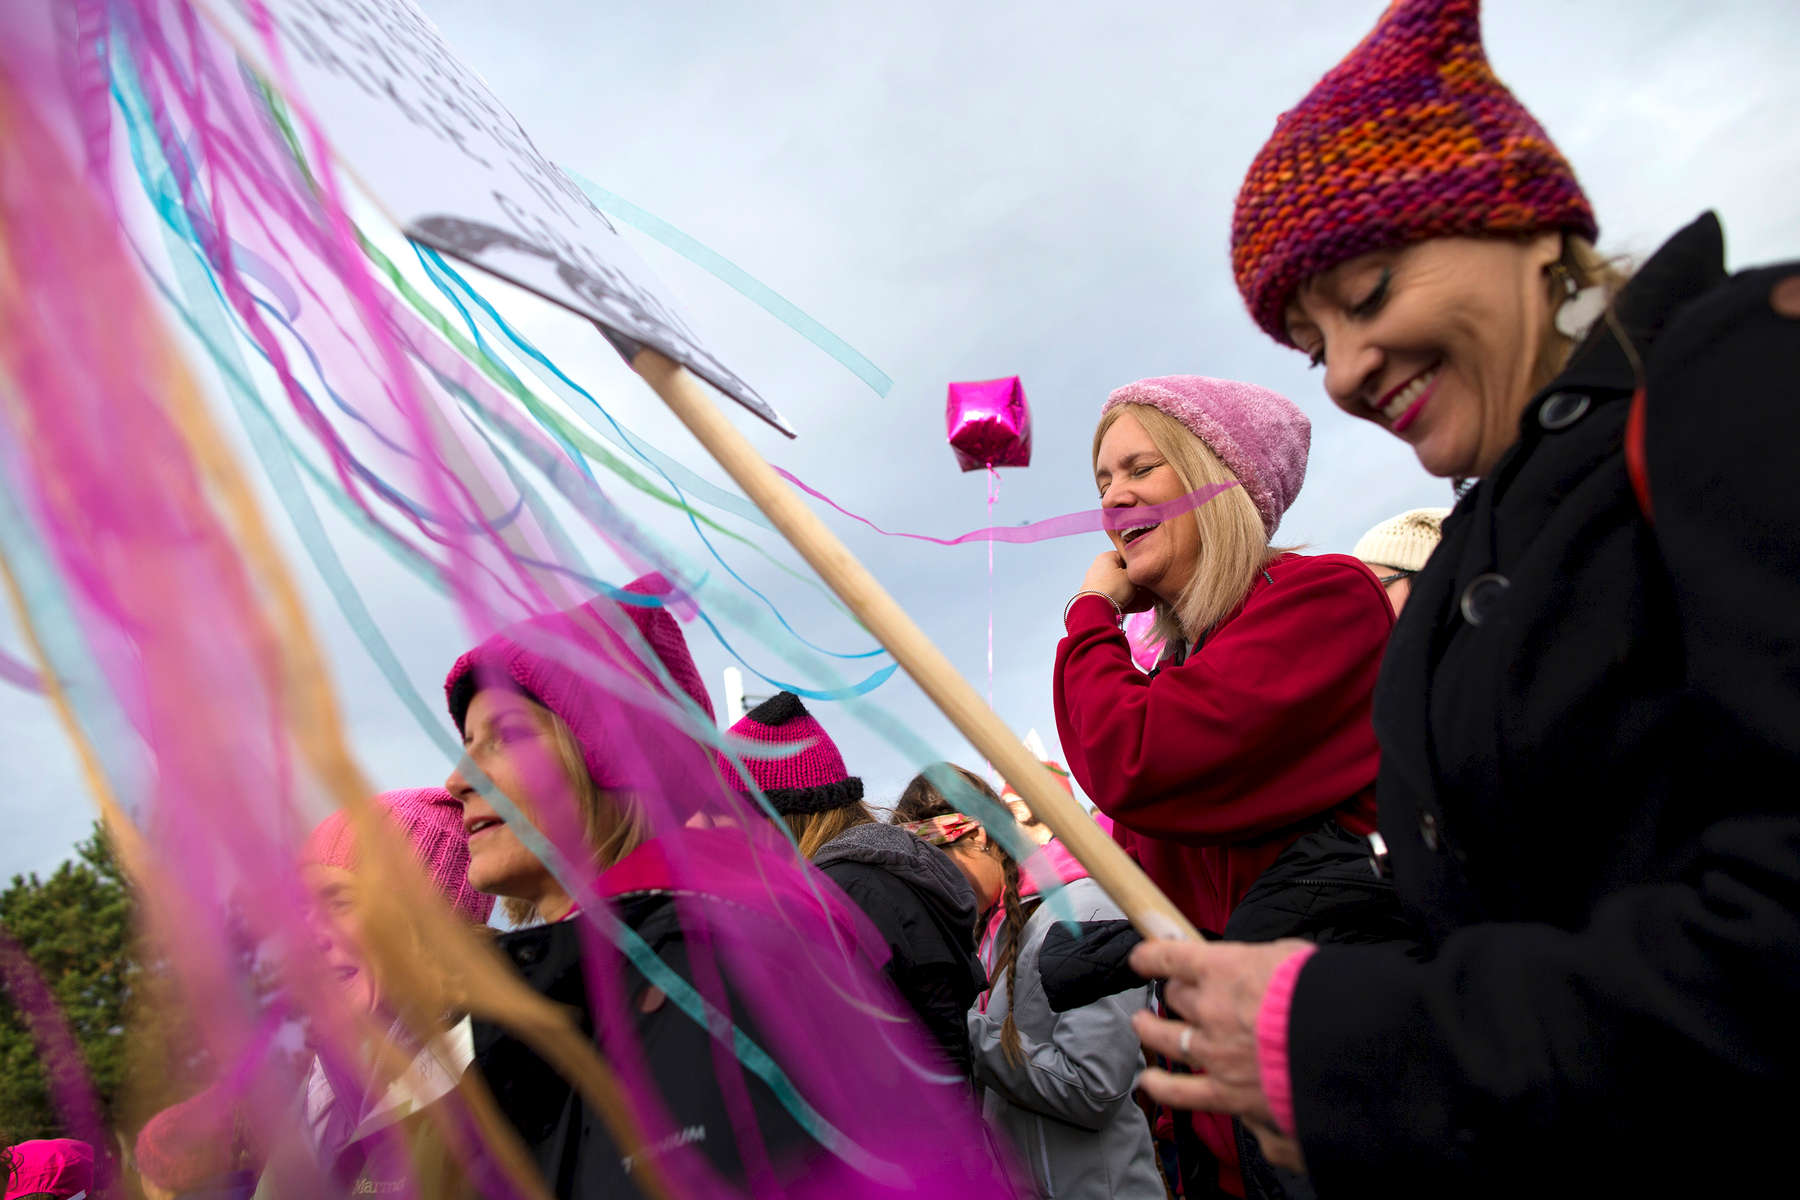 SEATTLE, WA - JANUARY 21: Thousands participate in a rally at Judkin's Park prior to the Womxn's March on Seattle a day after the inauguration of President Donald Trump on January 21, 2017 in Seattle, Washington. Women's marches were held around the country in protest of the newly elected president and in support of human rights and women's rights. 60,000 people were expected to attend. (Photo by Karen Ducey/Getty Images) SEATTLE, WA - MARCH 08: Seattle City Councilmember Kshama Sawant and Socialist Students USA host a rally in honor of International Women's Day, to stand up for reproductive rights and economic equality for women at Westlake Center on March 8, 2017 in Seattle, United States. (Photo by Karen Ducey/Getty Images)